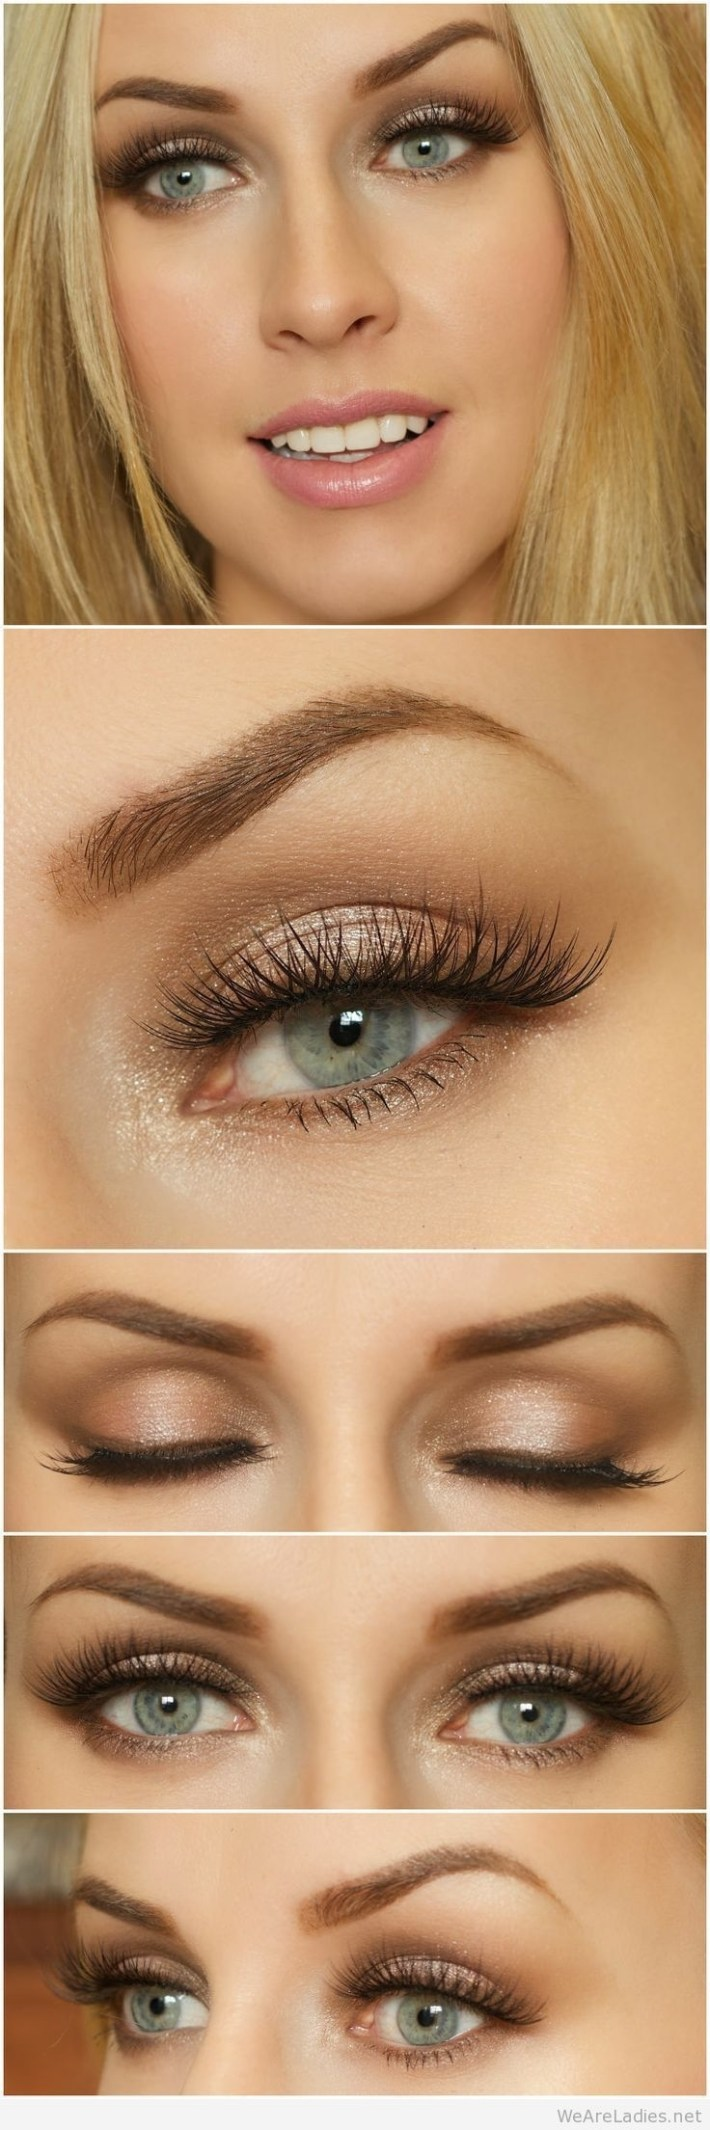 makeup colors for blue eyes and dirty blonde hair - wavy haircut